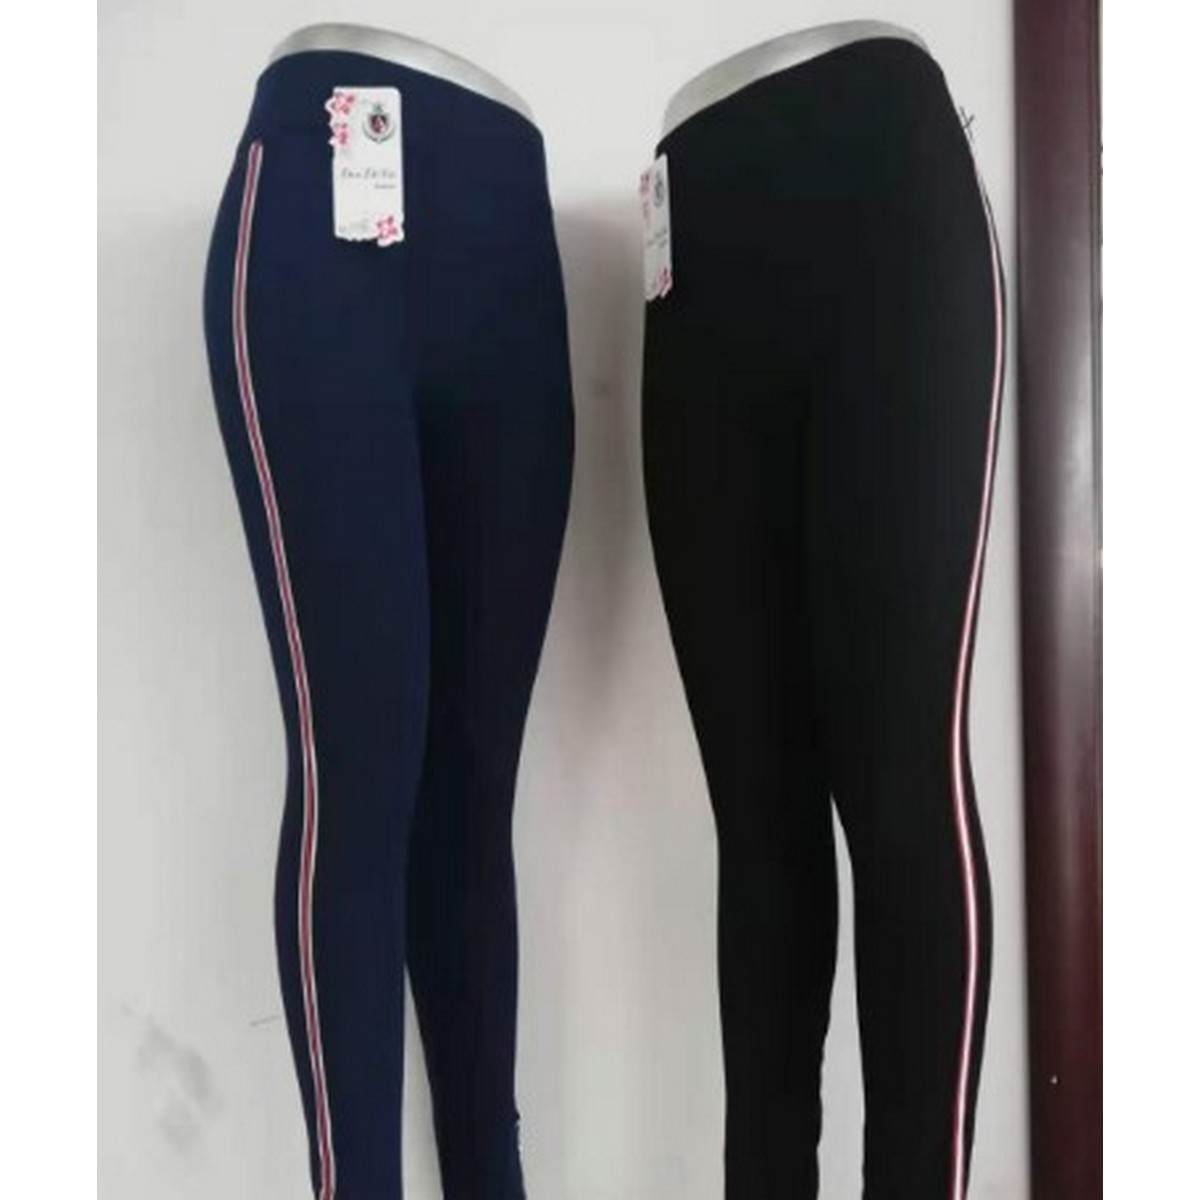 High Quality Stretchable Gym Tights Jogging Exercise Trousers for Girls Ladies